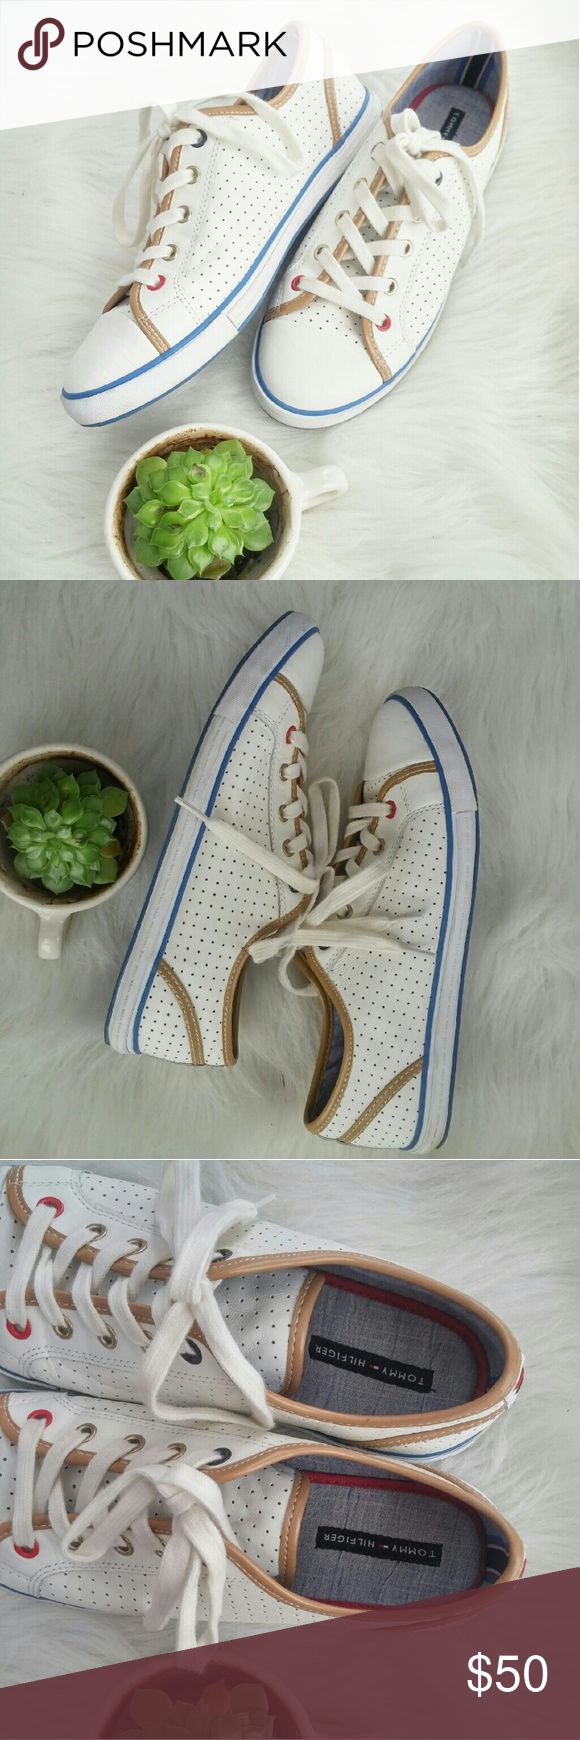 Leather Perforated Tommy Hilfiger Sneakers 8.5M Almost New! Hardly worn and worn very gently.  No scuffs etc! Perfect sneaker for upcoming spring weather.    Bundle for best deals! Hundreds of items available for discounted bundles! Bundle offers welcome.   Follow on IG: @the.junk.drawer Tommy Hilfiger Shoes Sneakers